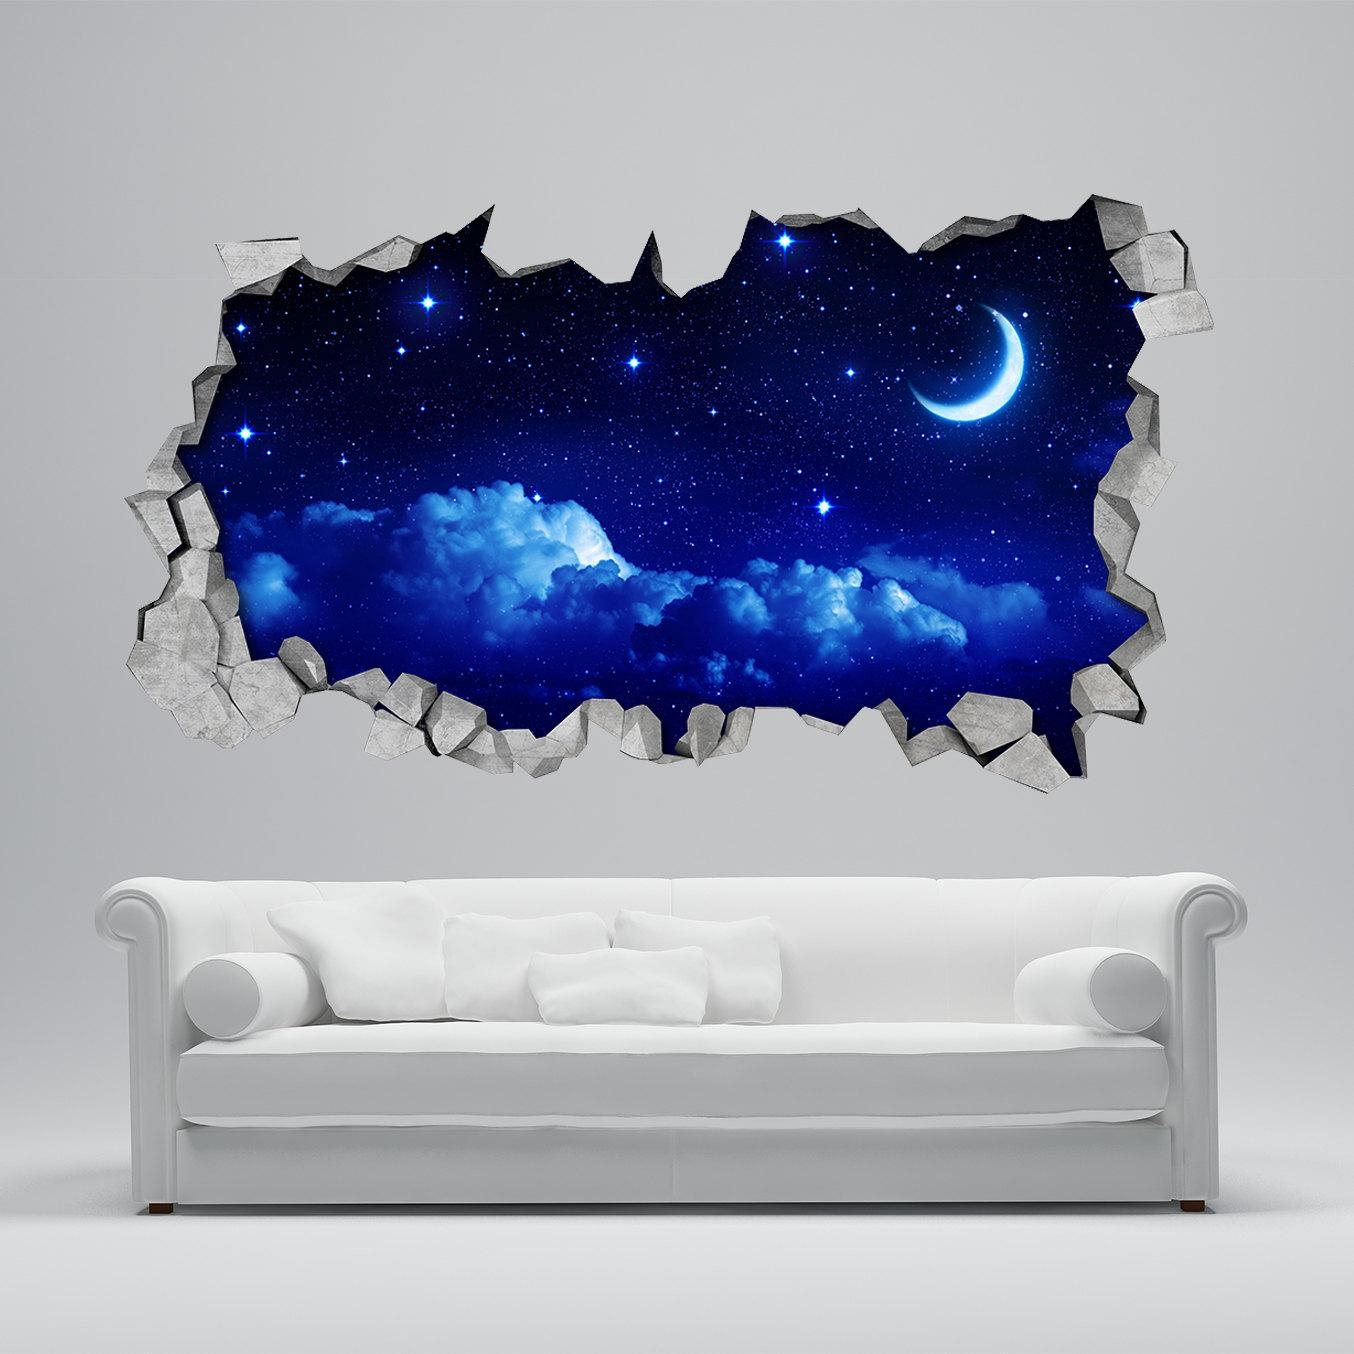 Moon Wall Sticker 3D Broken Wall Decal 3D Wallpaper Wall Pertaining To 3D Printed Wall Art (Image 16 of 20)